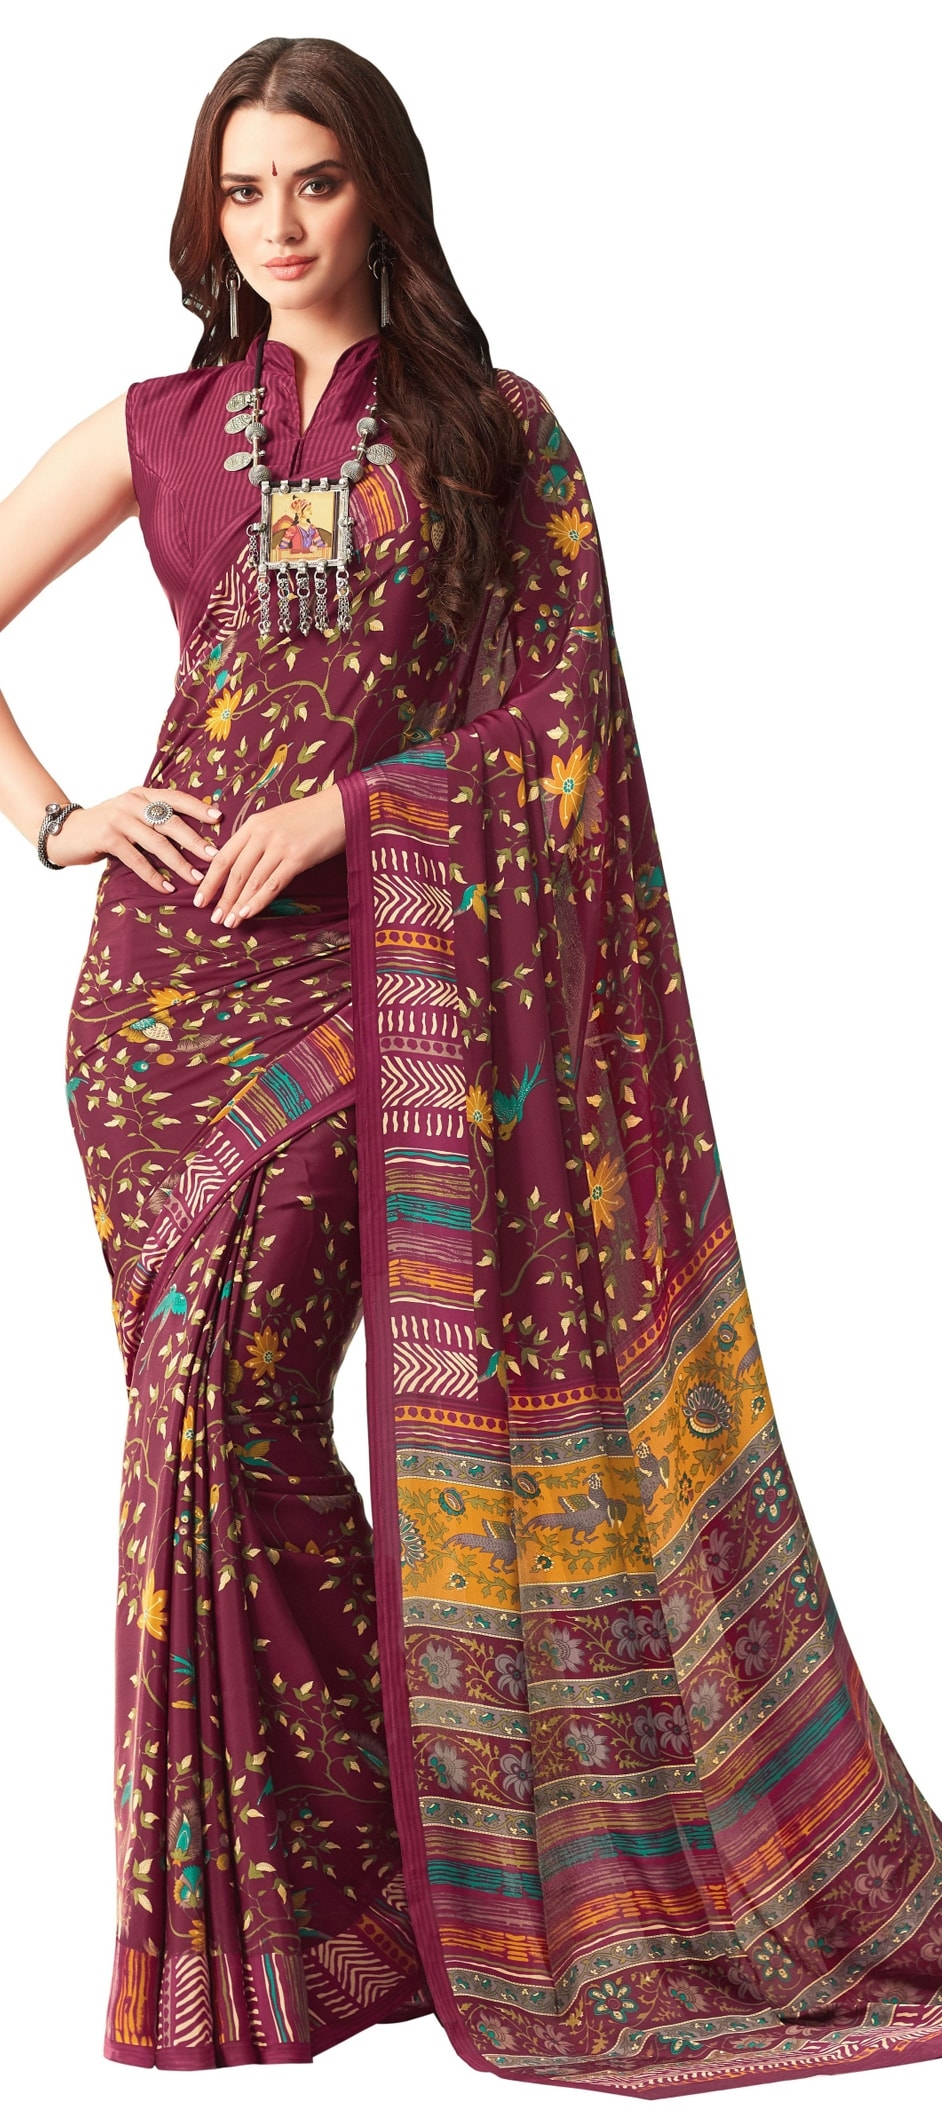 769775: Purple and Violet color family Silk Sarees with matching ...